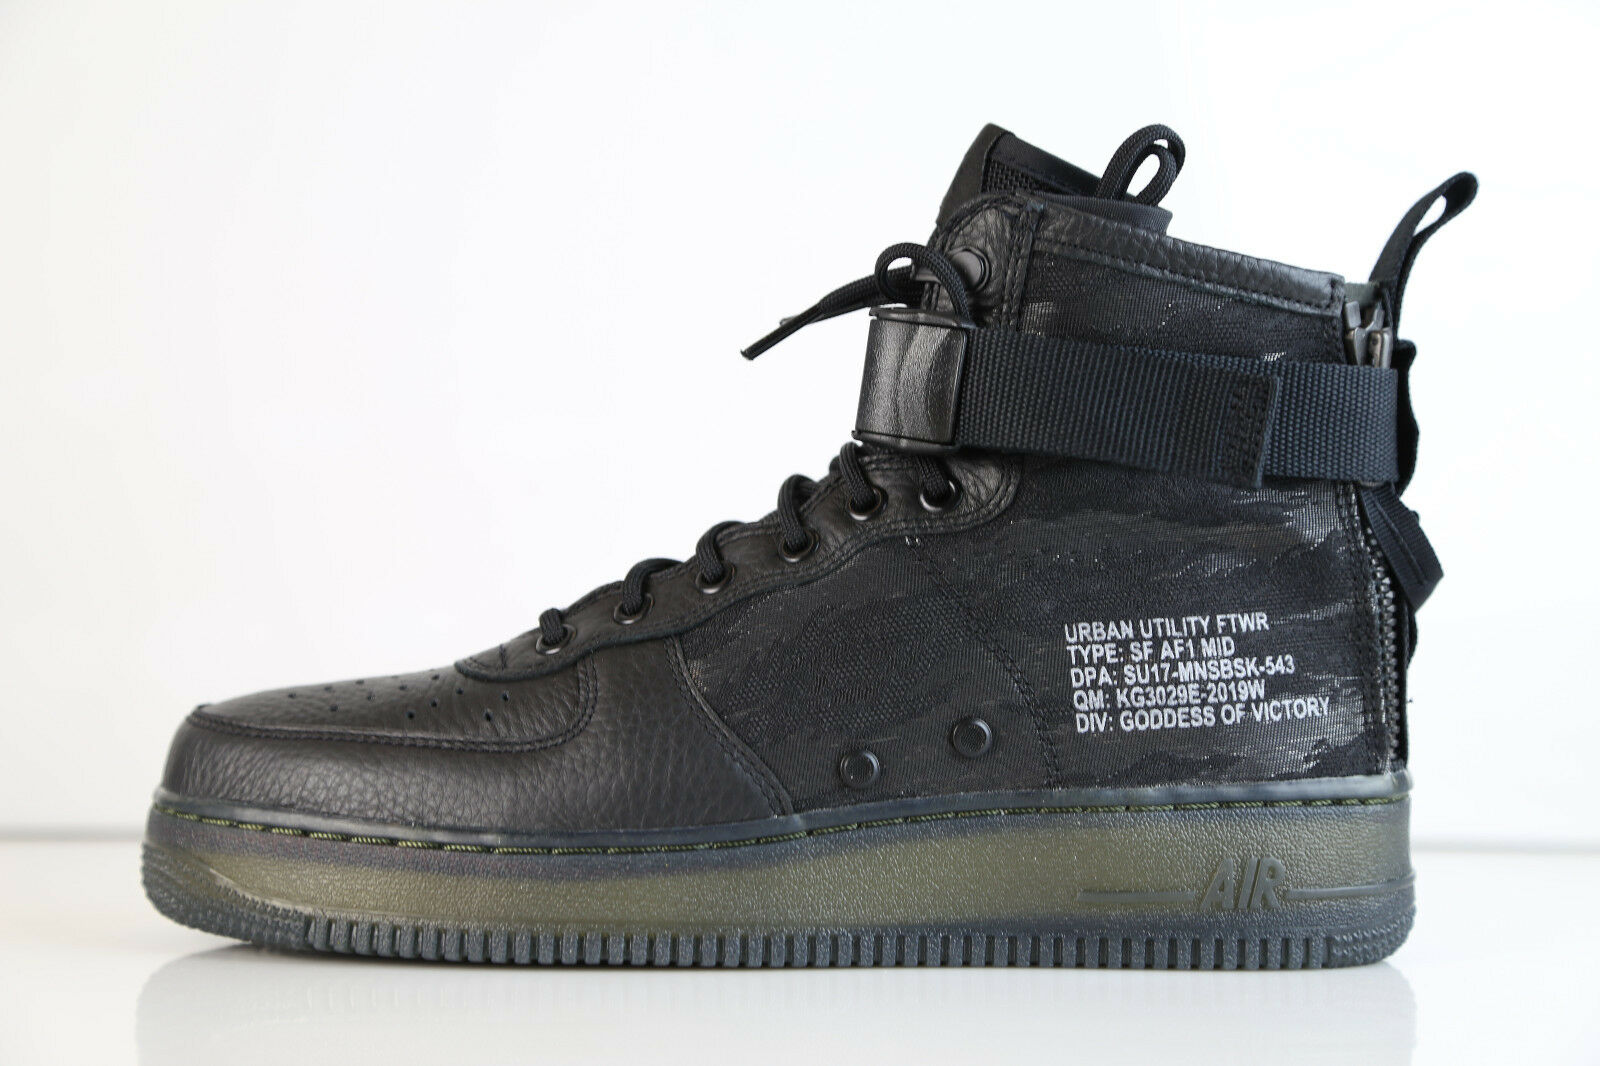 Nike Nike Nike Air Force 1 SF AF1 Mid Urban Utility Black Tiger Camo QS AA7345-001 8-13 3 e311a9